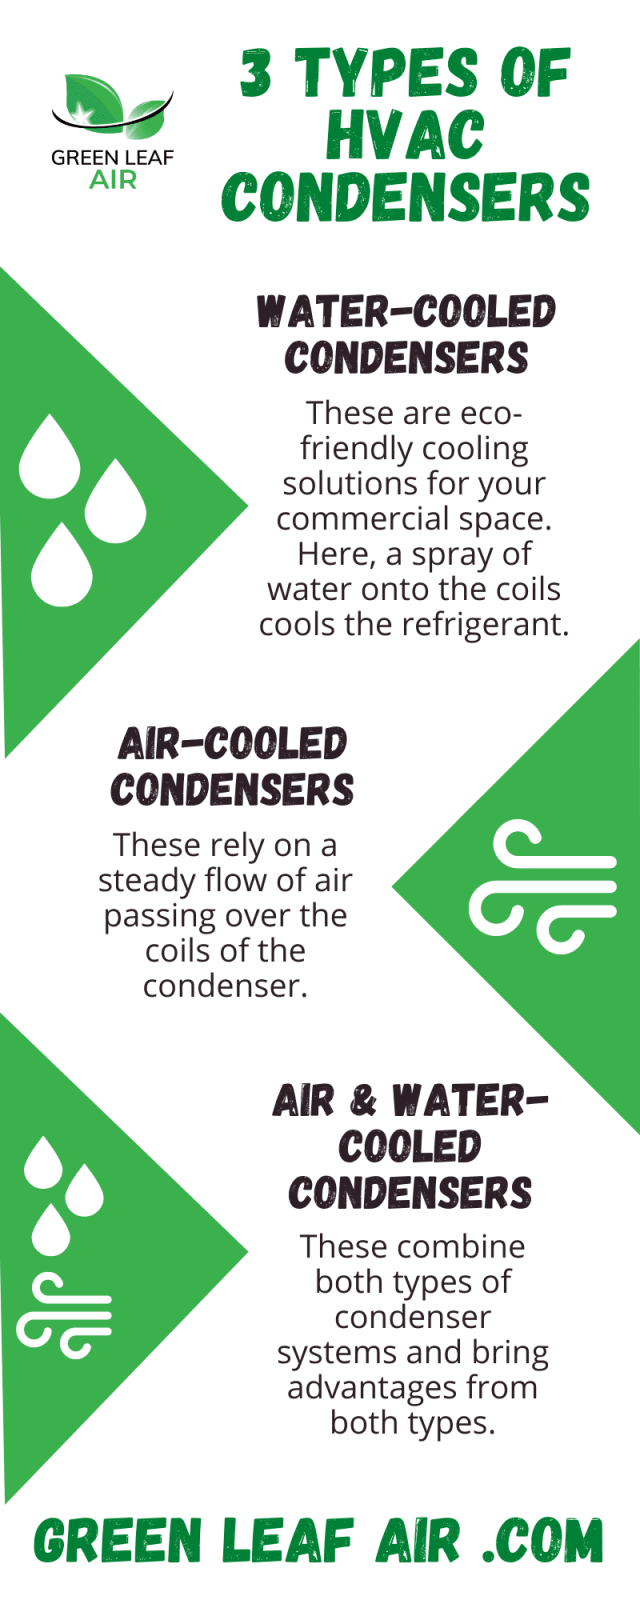 3 Types of HVAC Condensers